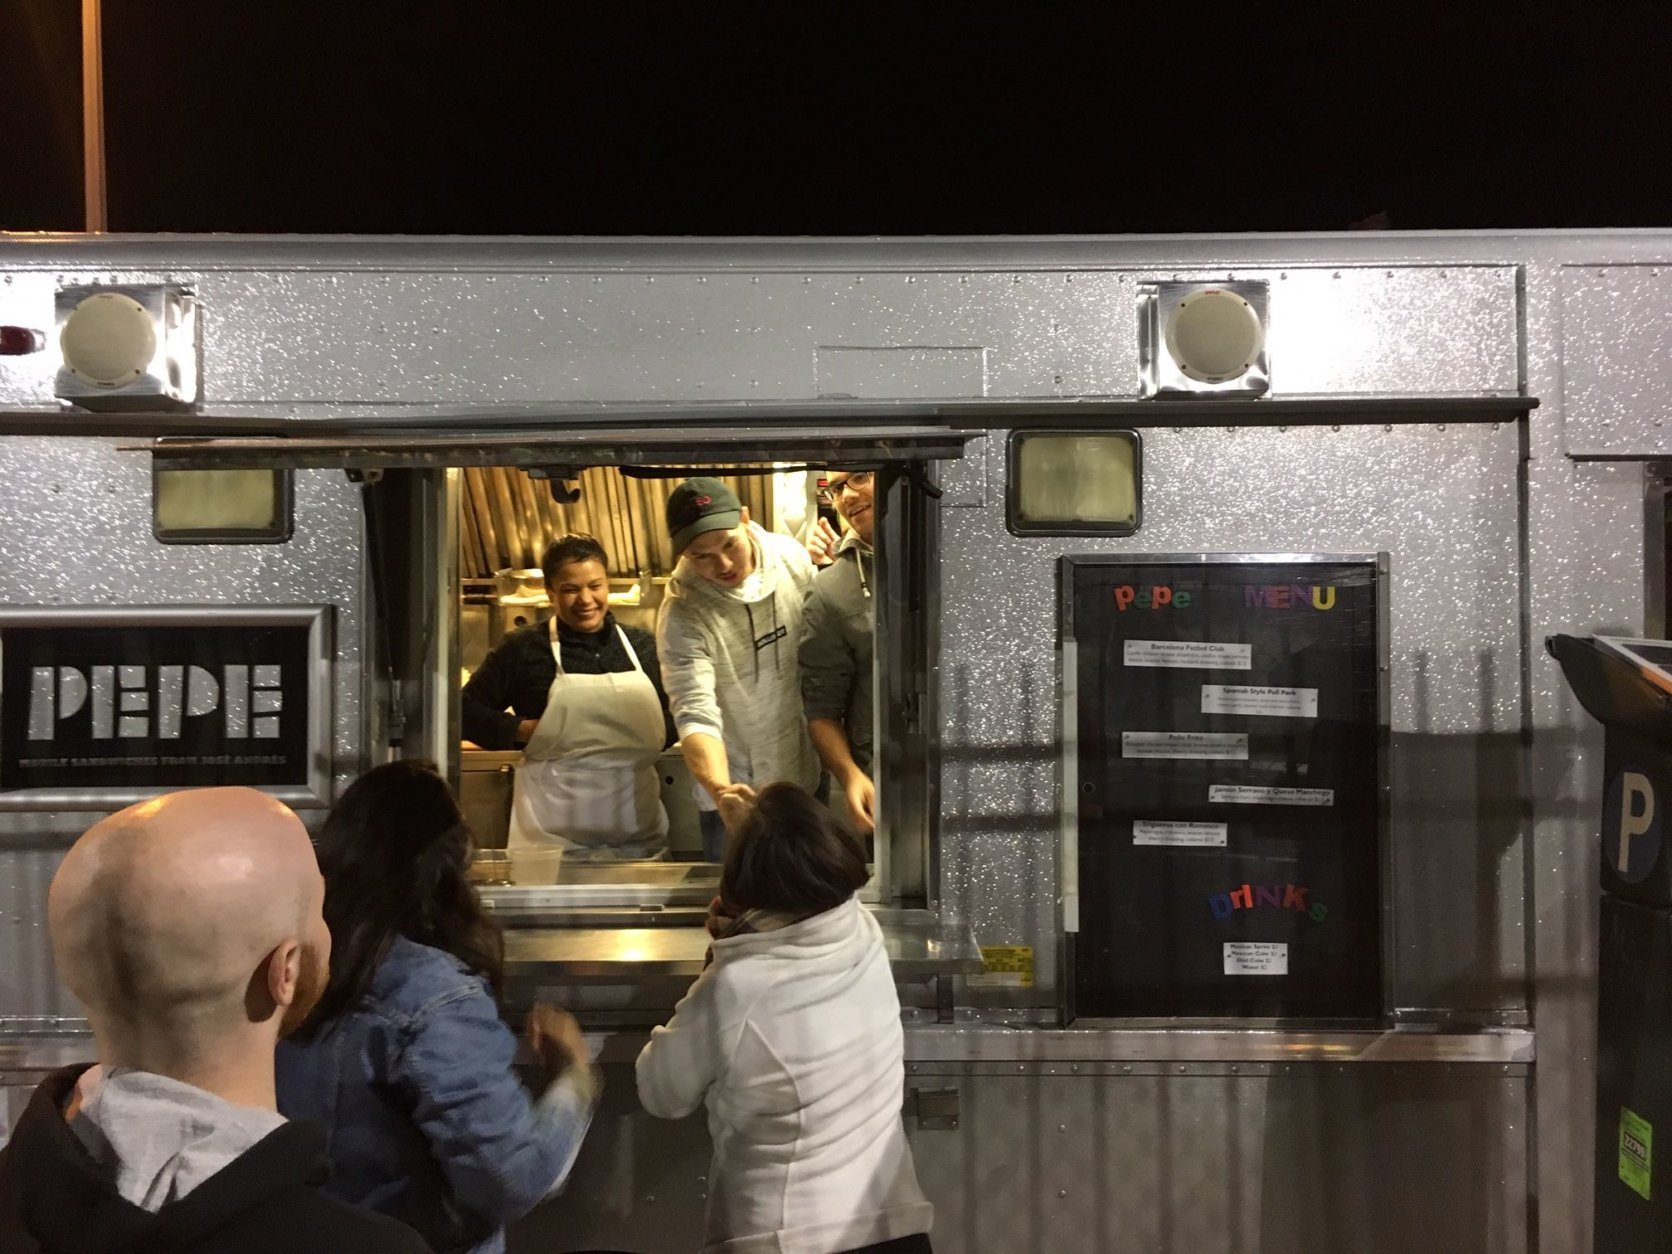 ThinkFoodGroup food truck Pepe was on hand to feed players and spectators alike. (WTOP/Noah Frank)